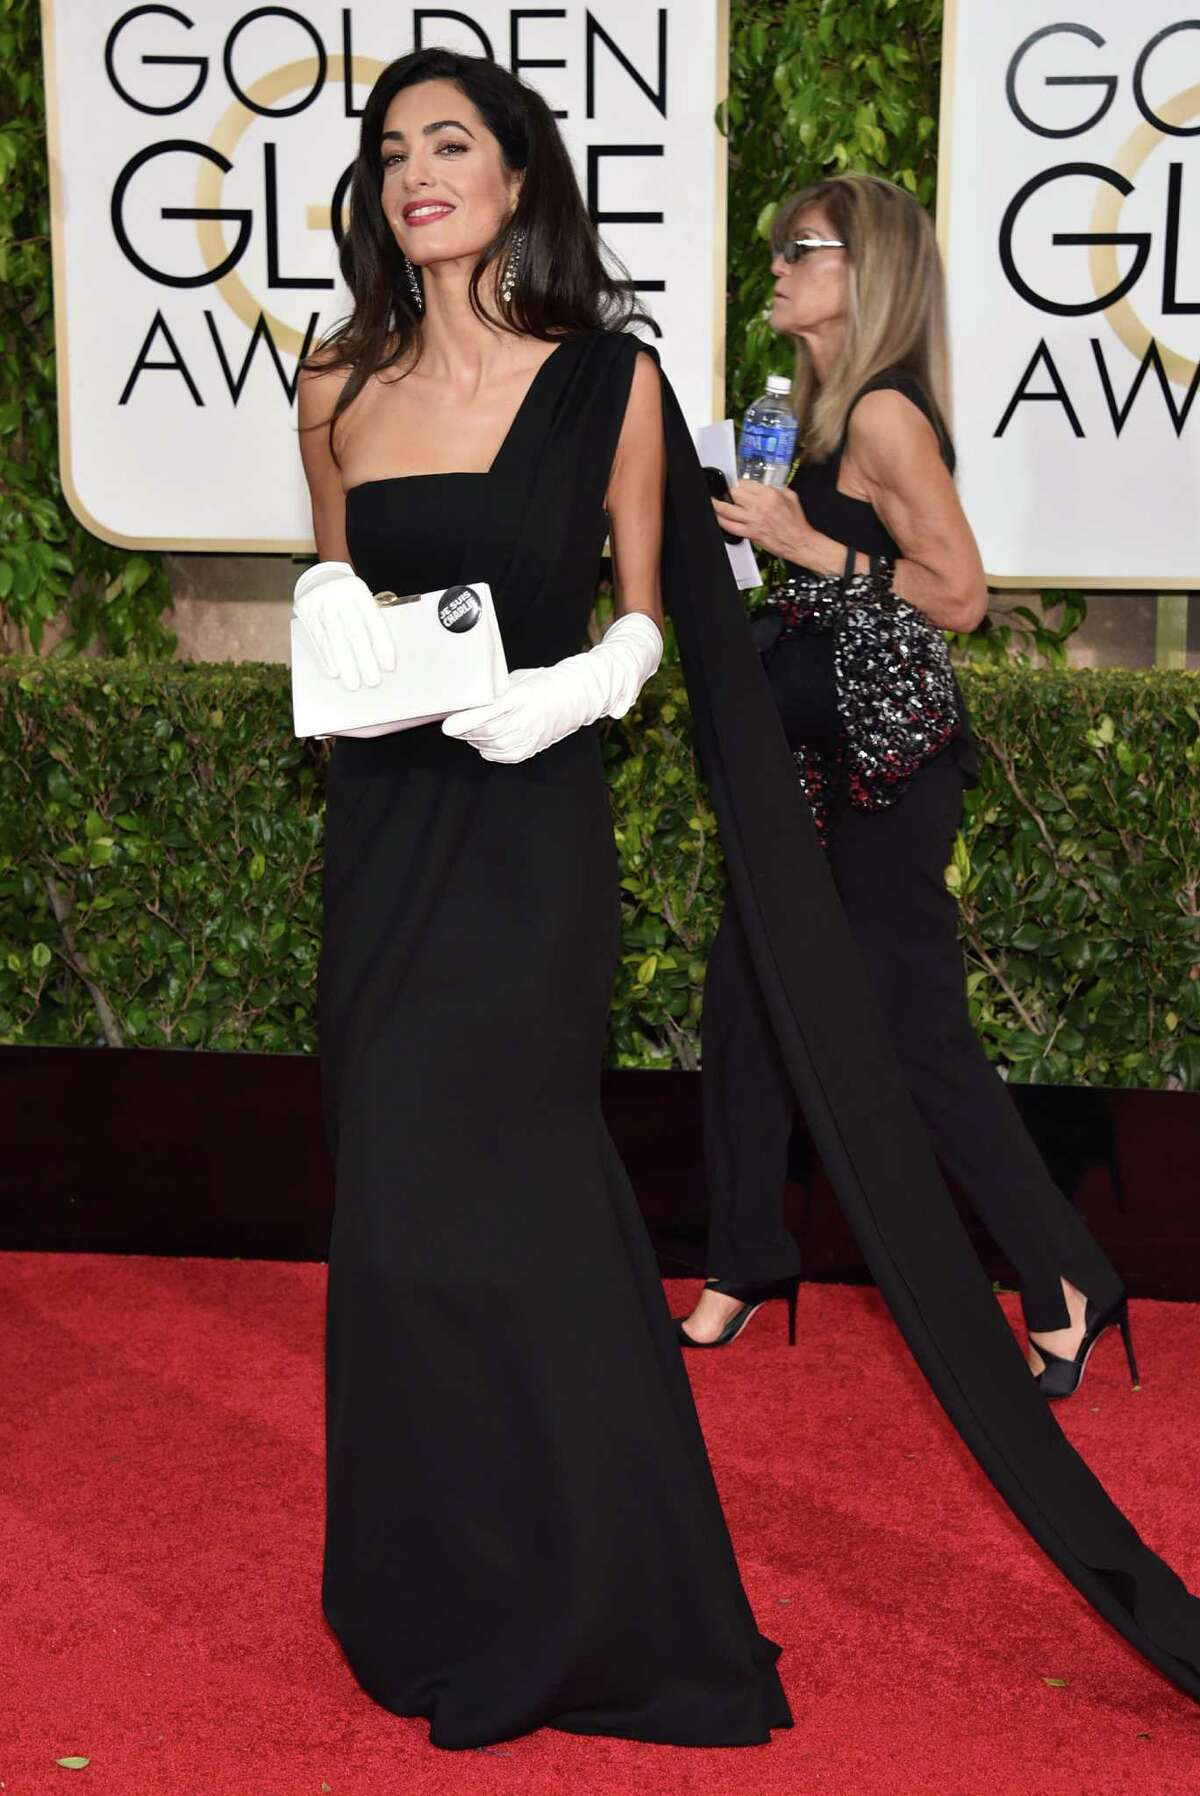 Amal Clooney arrives at the 72nd annual Golden Globe Awards at the Beverly Hilton Hotel on Sunday, Jan. 11, 2015, in Beverly Hills, Calif. (Photo by John Shearer/Invision/AP)